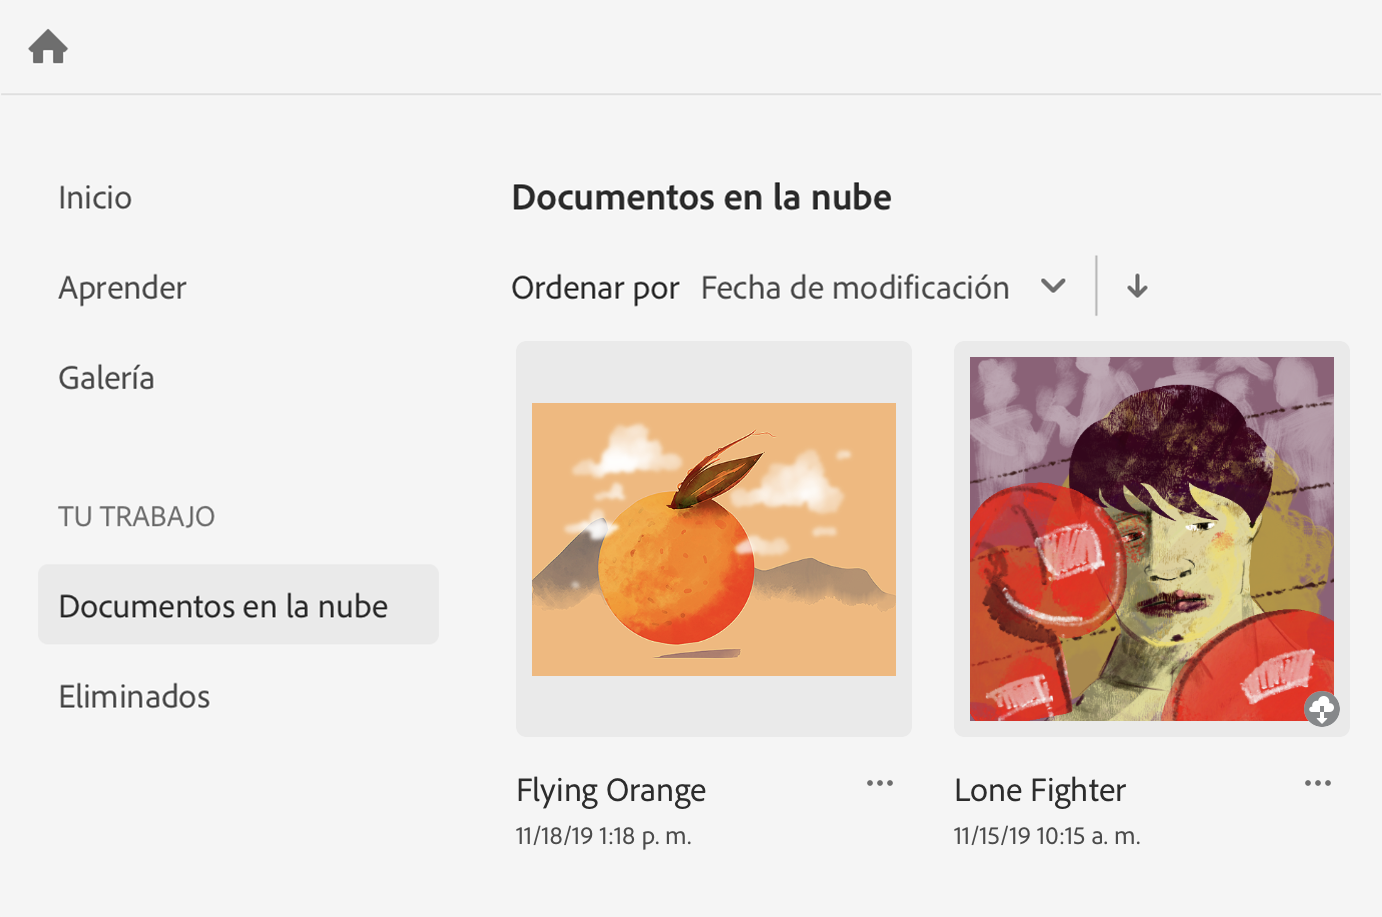 Documentos en la nube